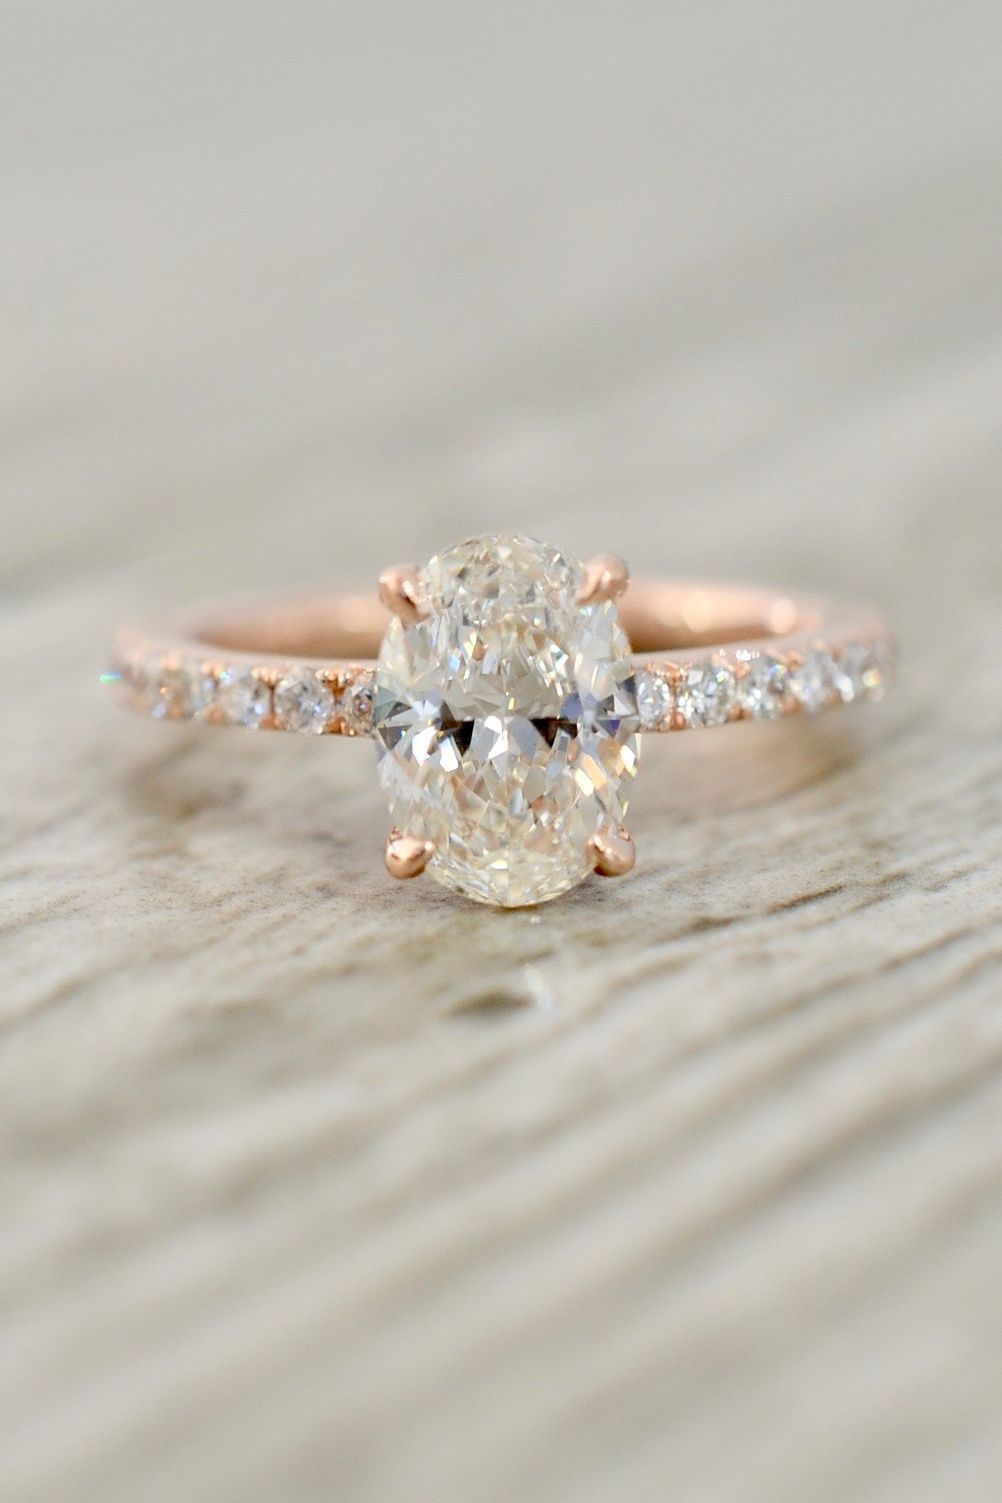 3db829523 Style 3891 features an 8.5x6mm oval brilliant in a true French pavé-set  engagement